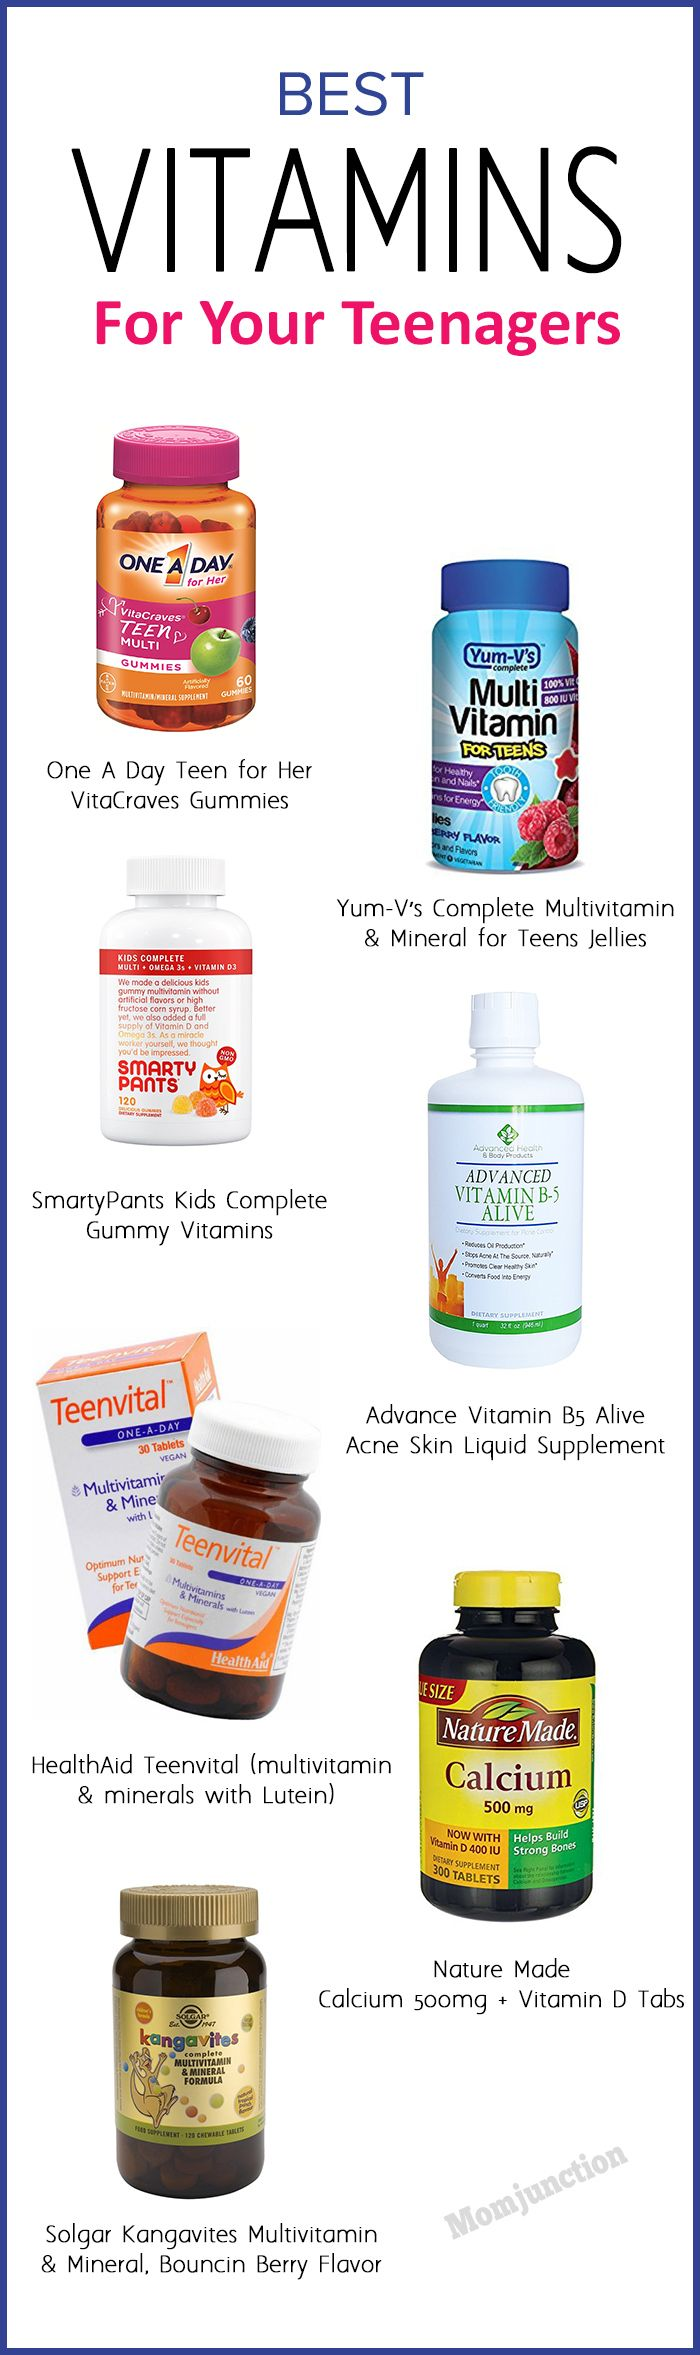 USANA Vitamins CellSentials and Products - Online Discount Shop